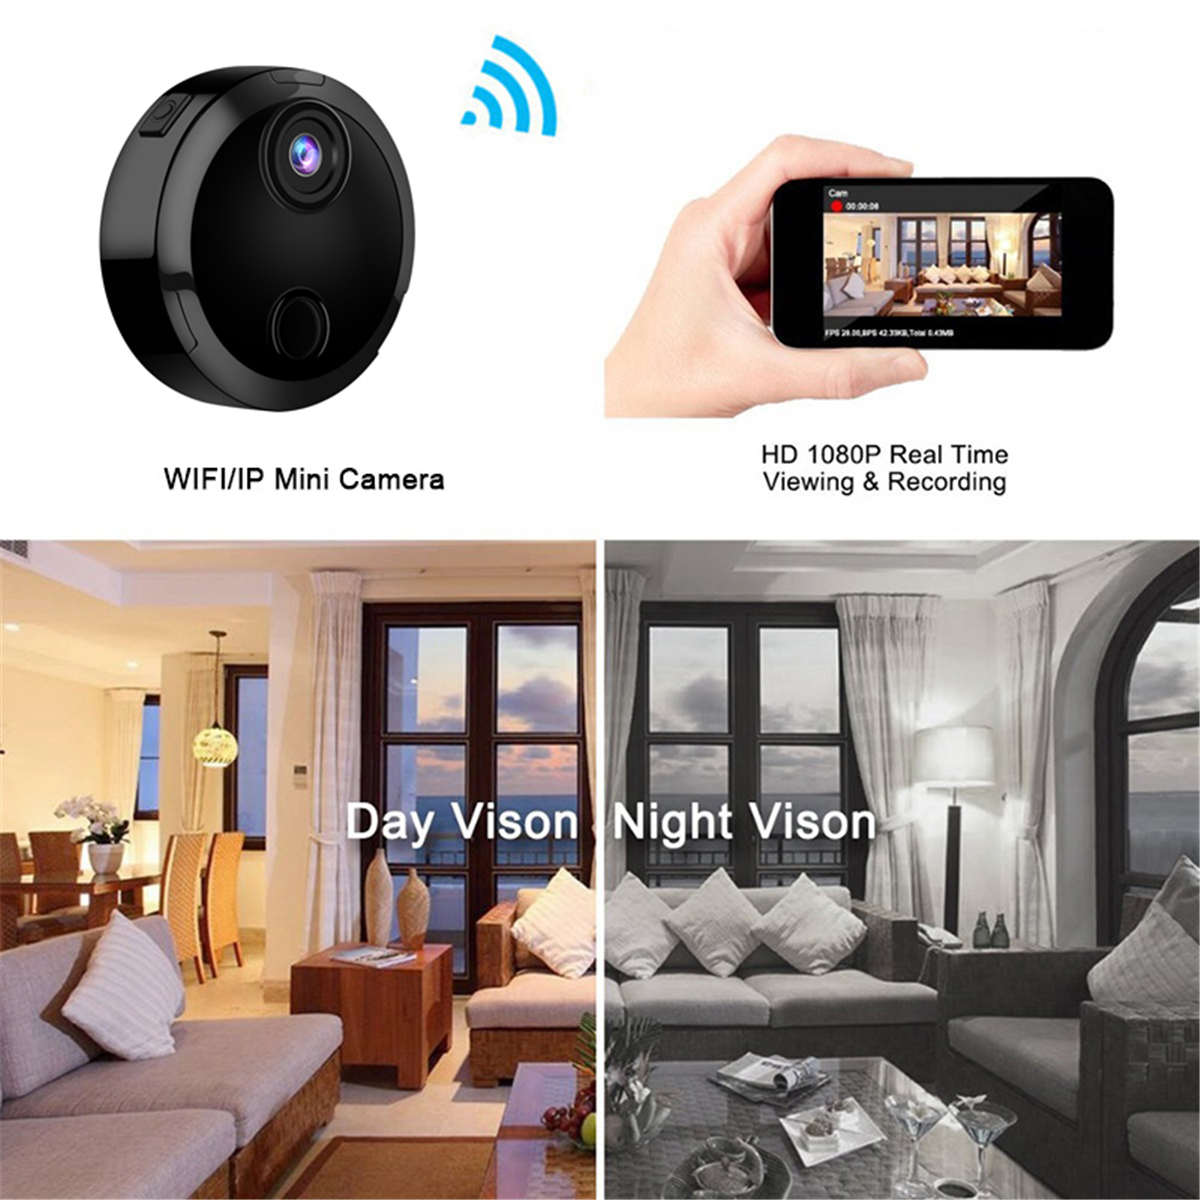 Mini HD 1080P Wireless WiFi IP Security Camera Night Vision Home Camcorder APP Control